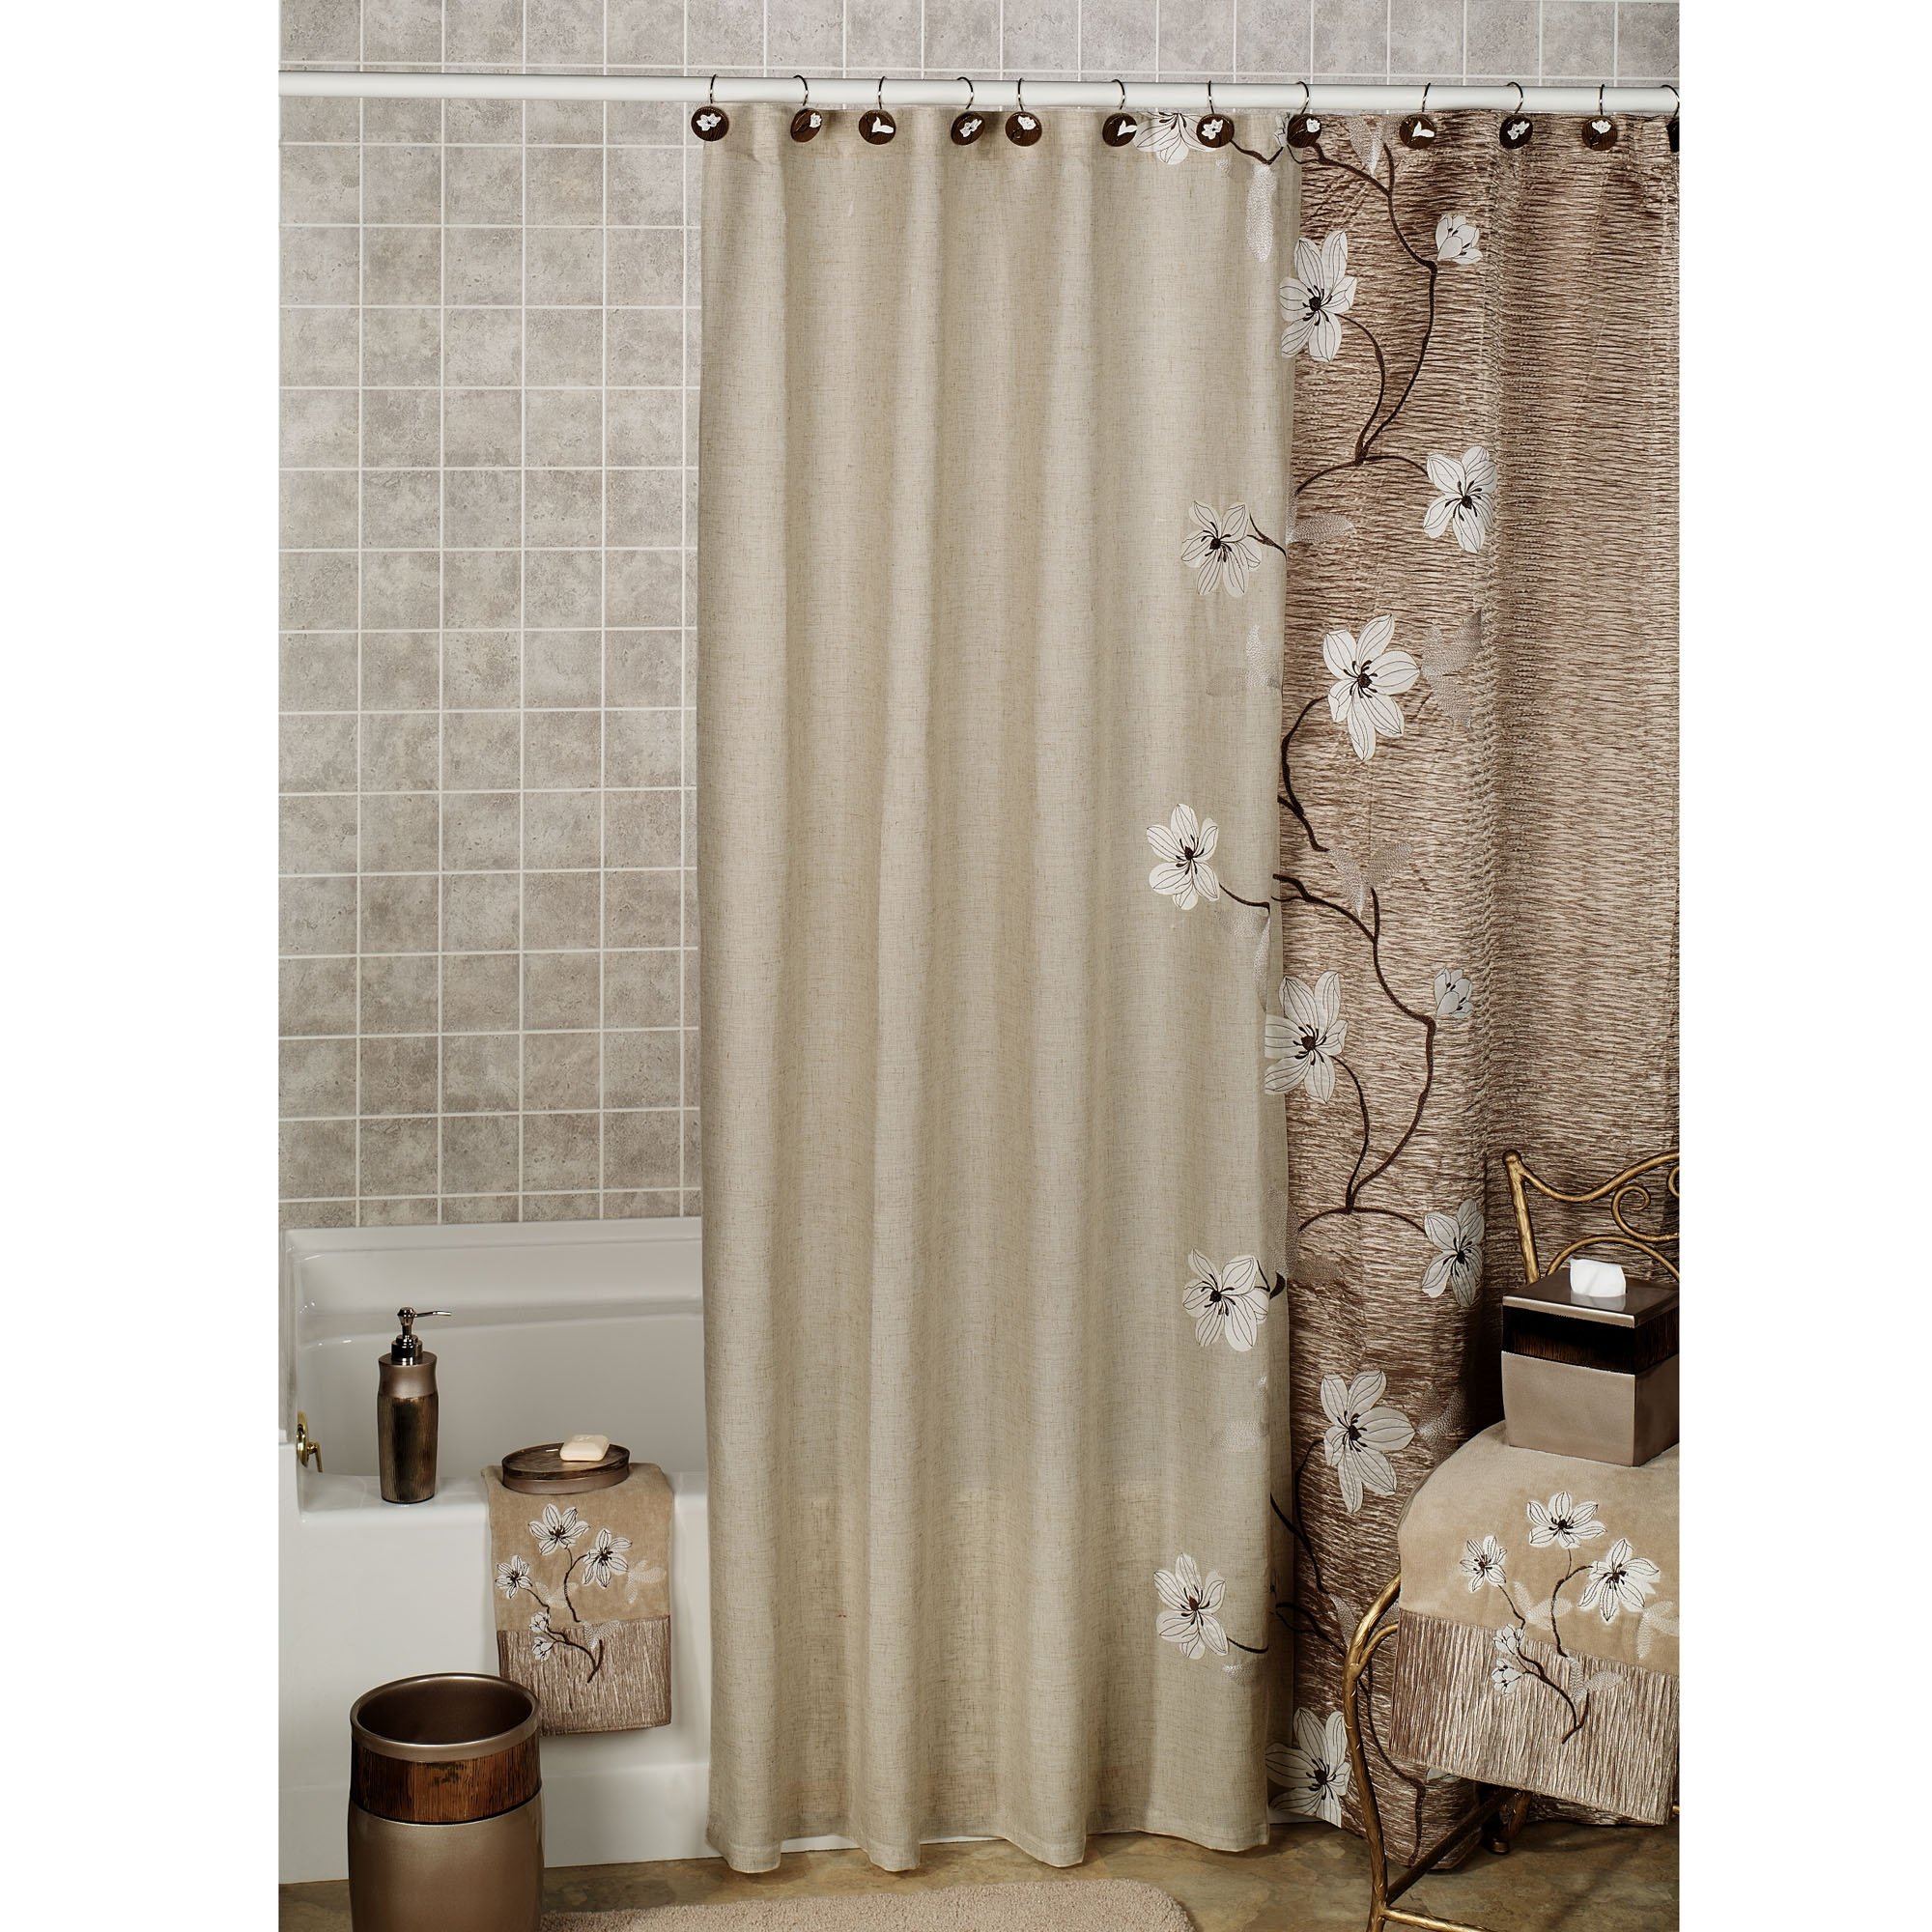 Shower Curtain With Matching Rugs